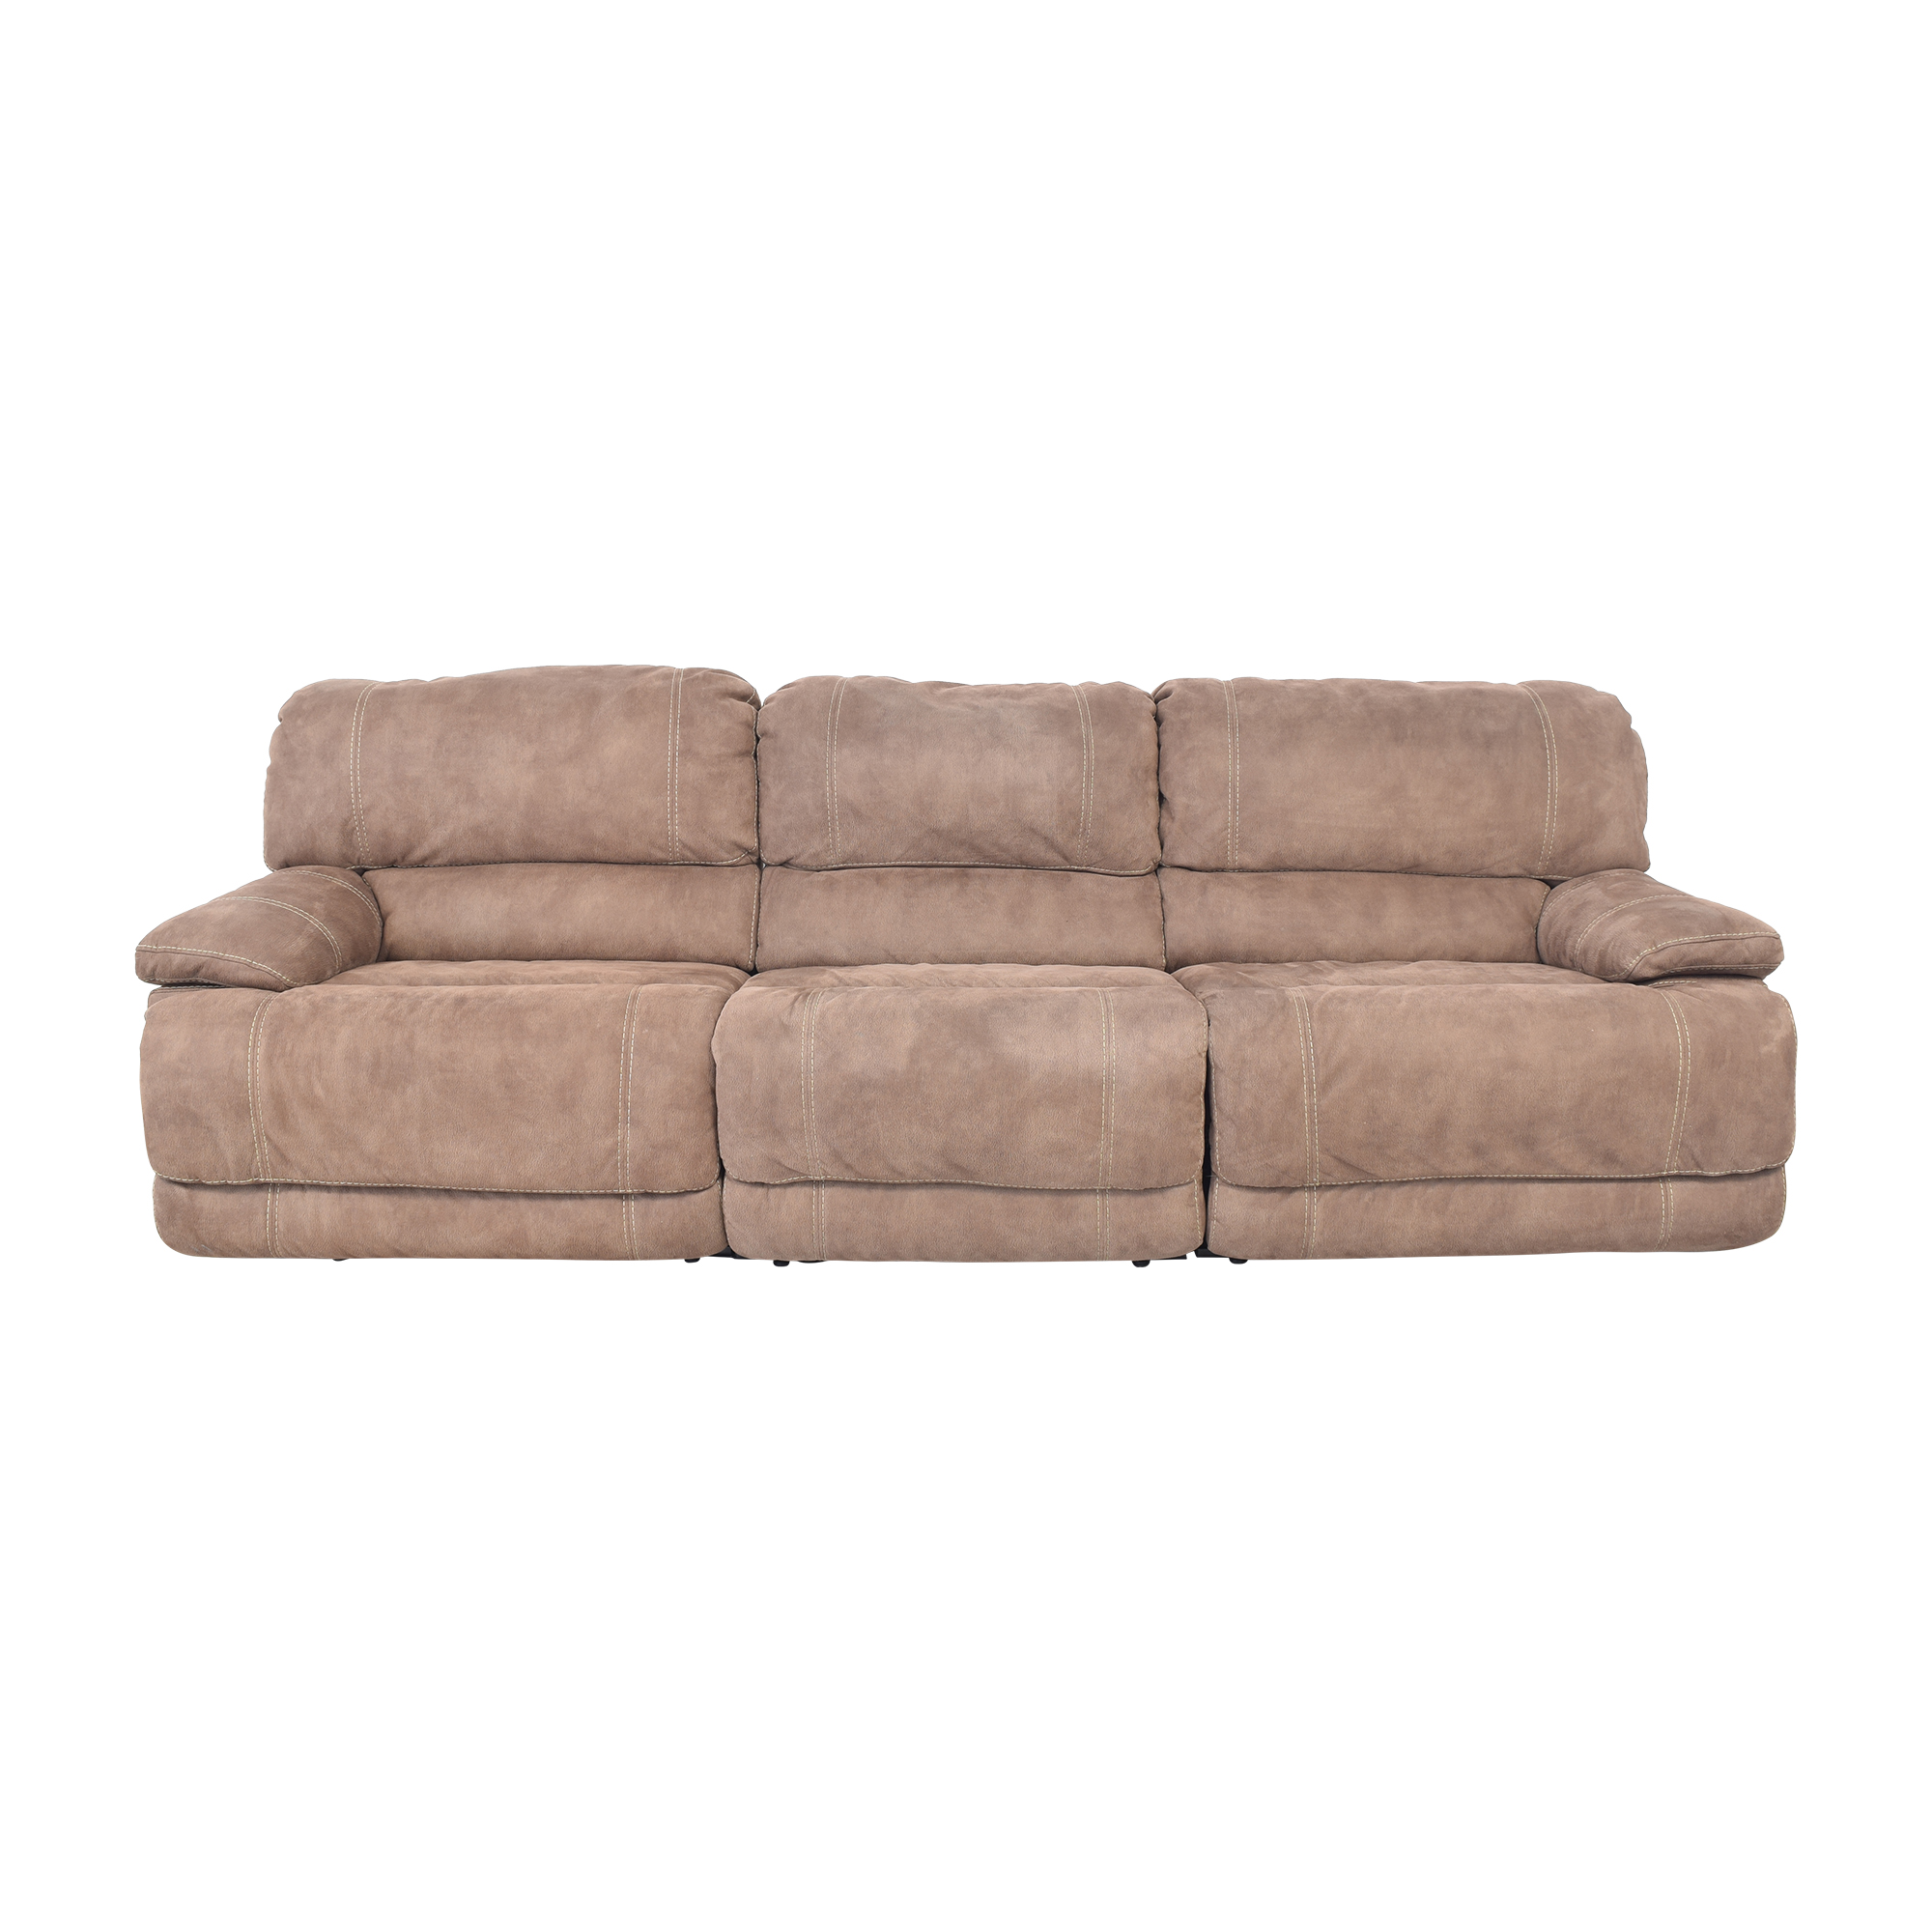 Macy's Macy's Three Cushion Reclining Sofa nyc